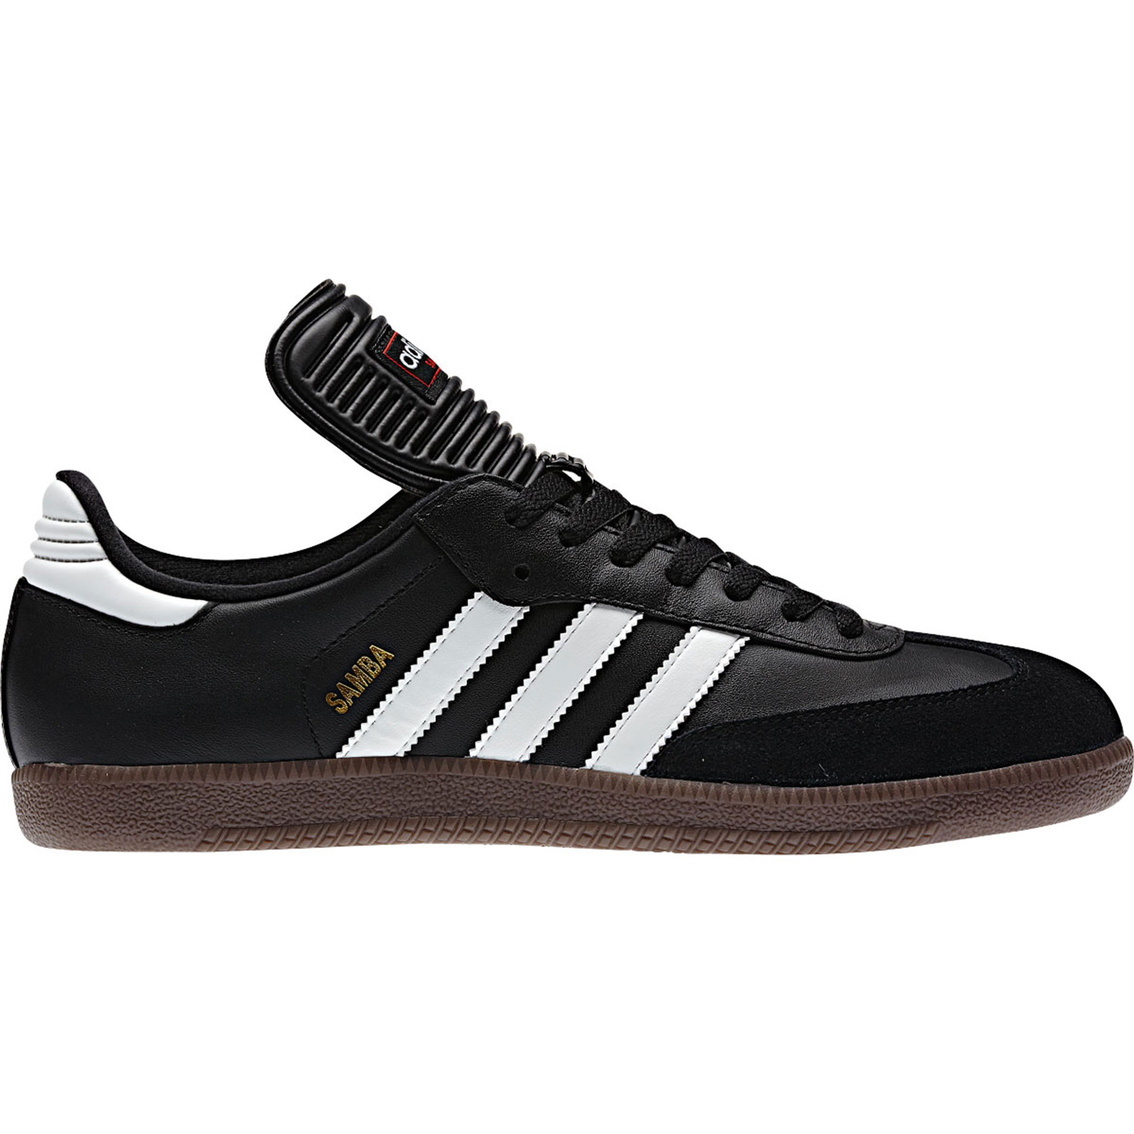 Adidas Men's Samba Classic Indoor Soccer Shoes | Soccer | Gifts & Food |  Shop The Exchange